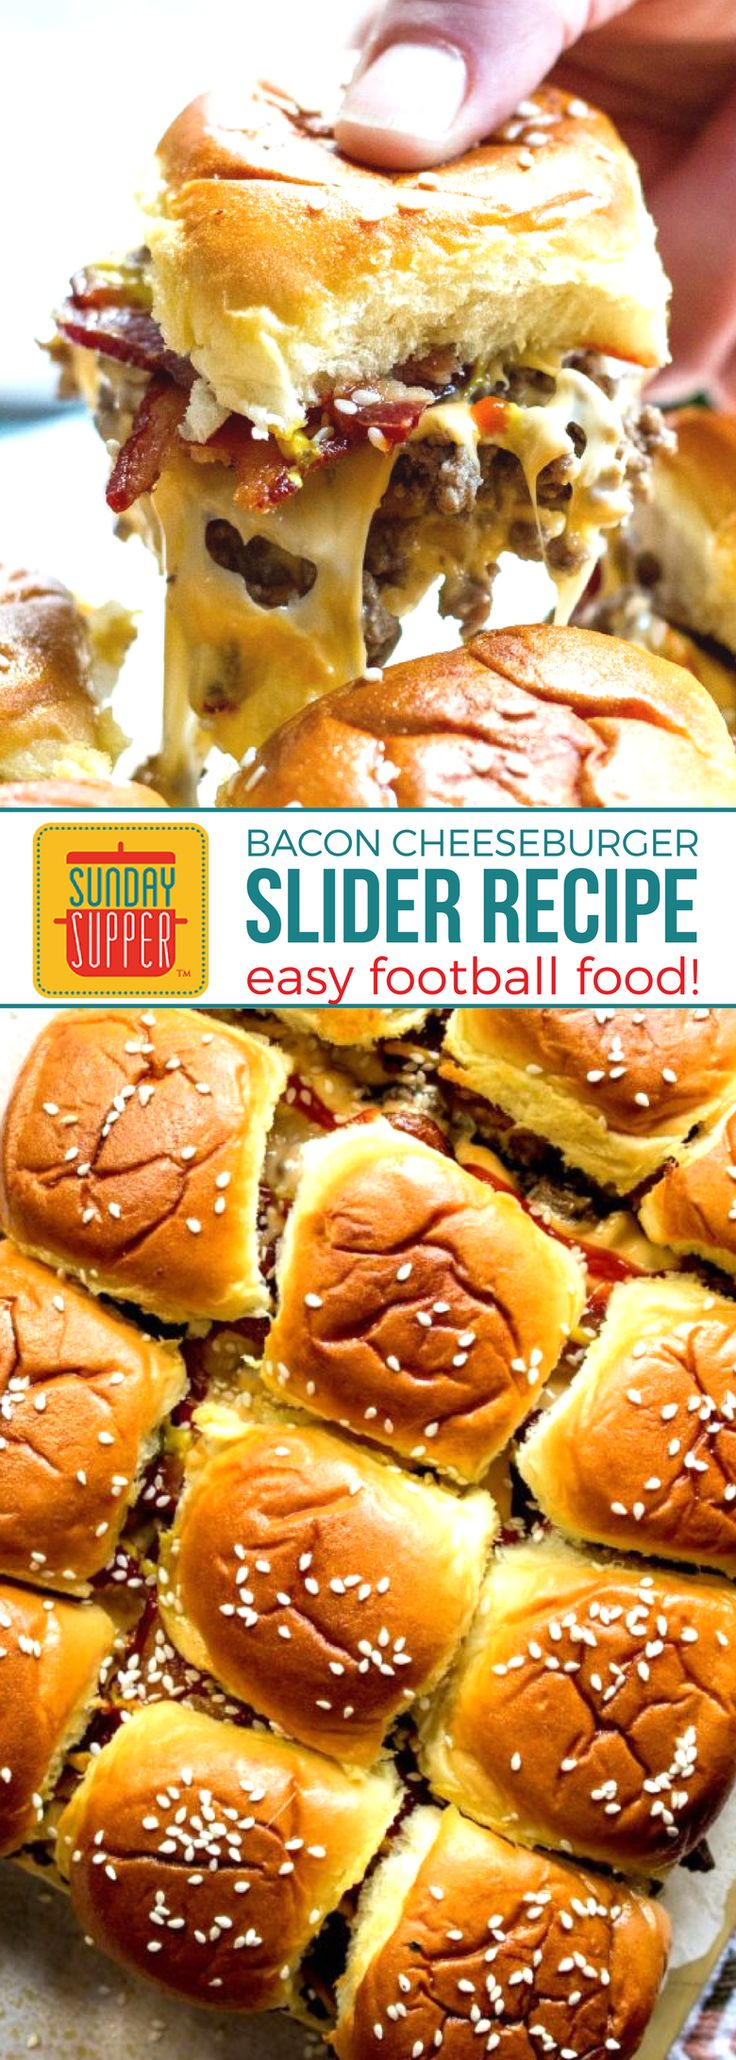 BACON CHEESEBURGER SLIDERS is the easy football food recipe YOU NEED right now! Smokey, salty bacon, gooey cheese, and a pickle on top will be your favorite half time snack! Baked in the oven for a deliciously easy way to feed a hungry crowd! Score big when you serve this cheesy appetizer recipe piled high with savory bacon and all of your favorite cheeseburger toppings to your game day crowd! #easyfootballfood #footballappetizers #gamedayrecipes #beefsliderrecipes